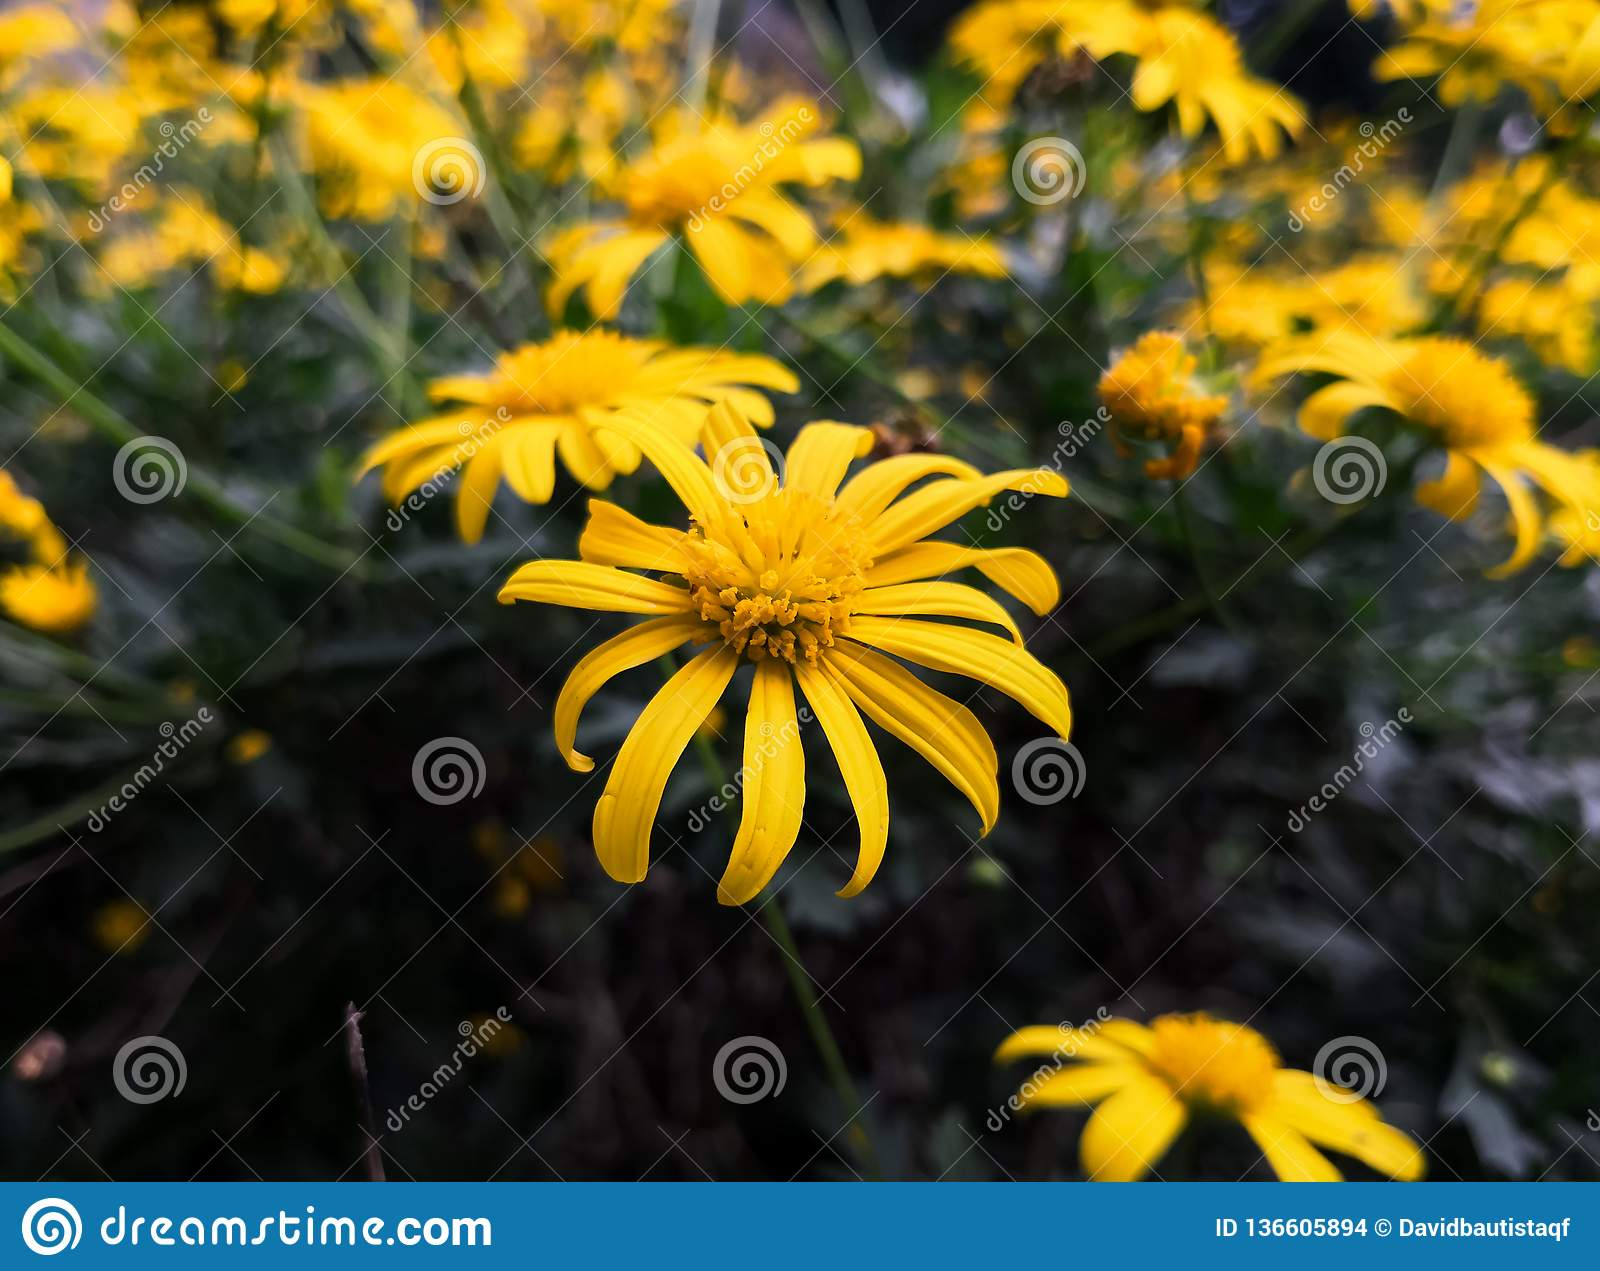 High contrast between yellow flowers and dark background. Meadow and flowerbed.